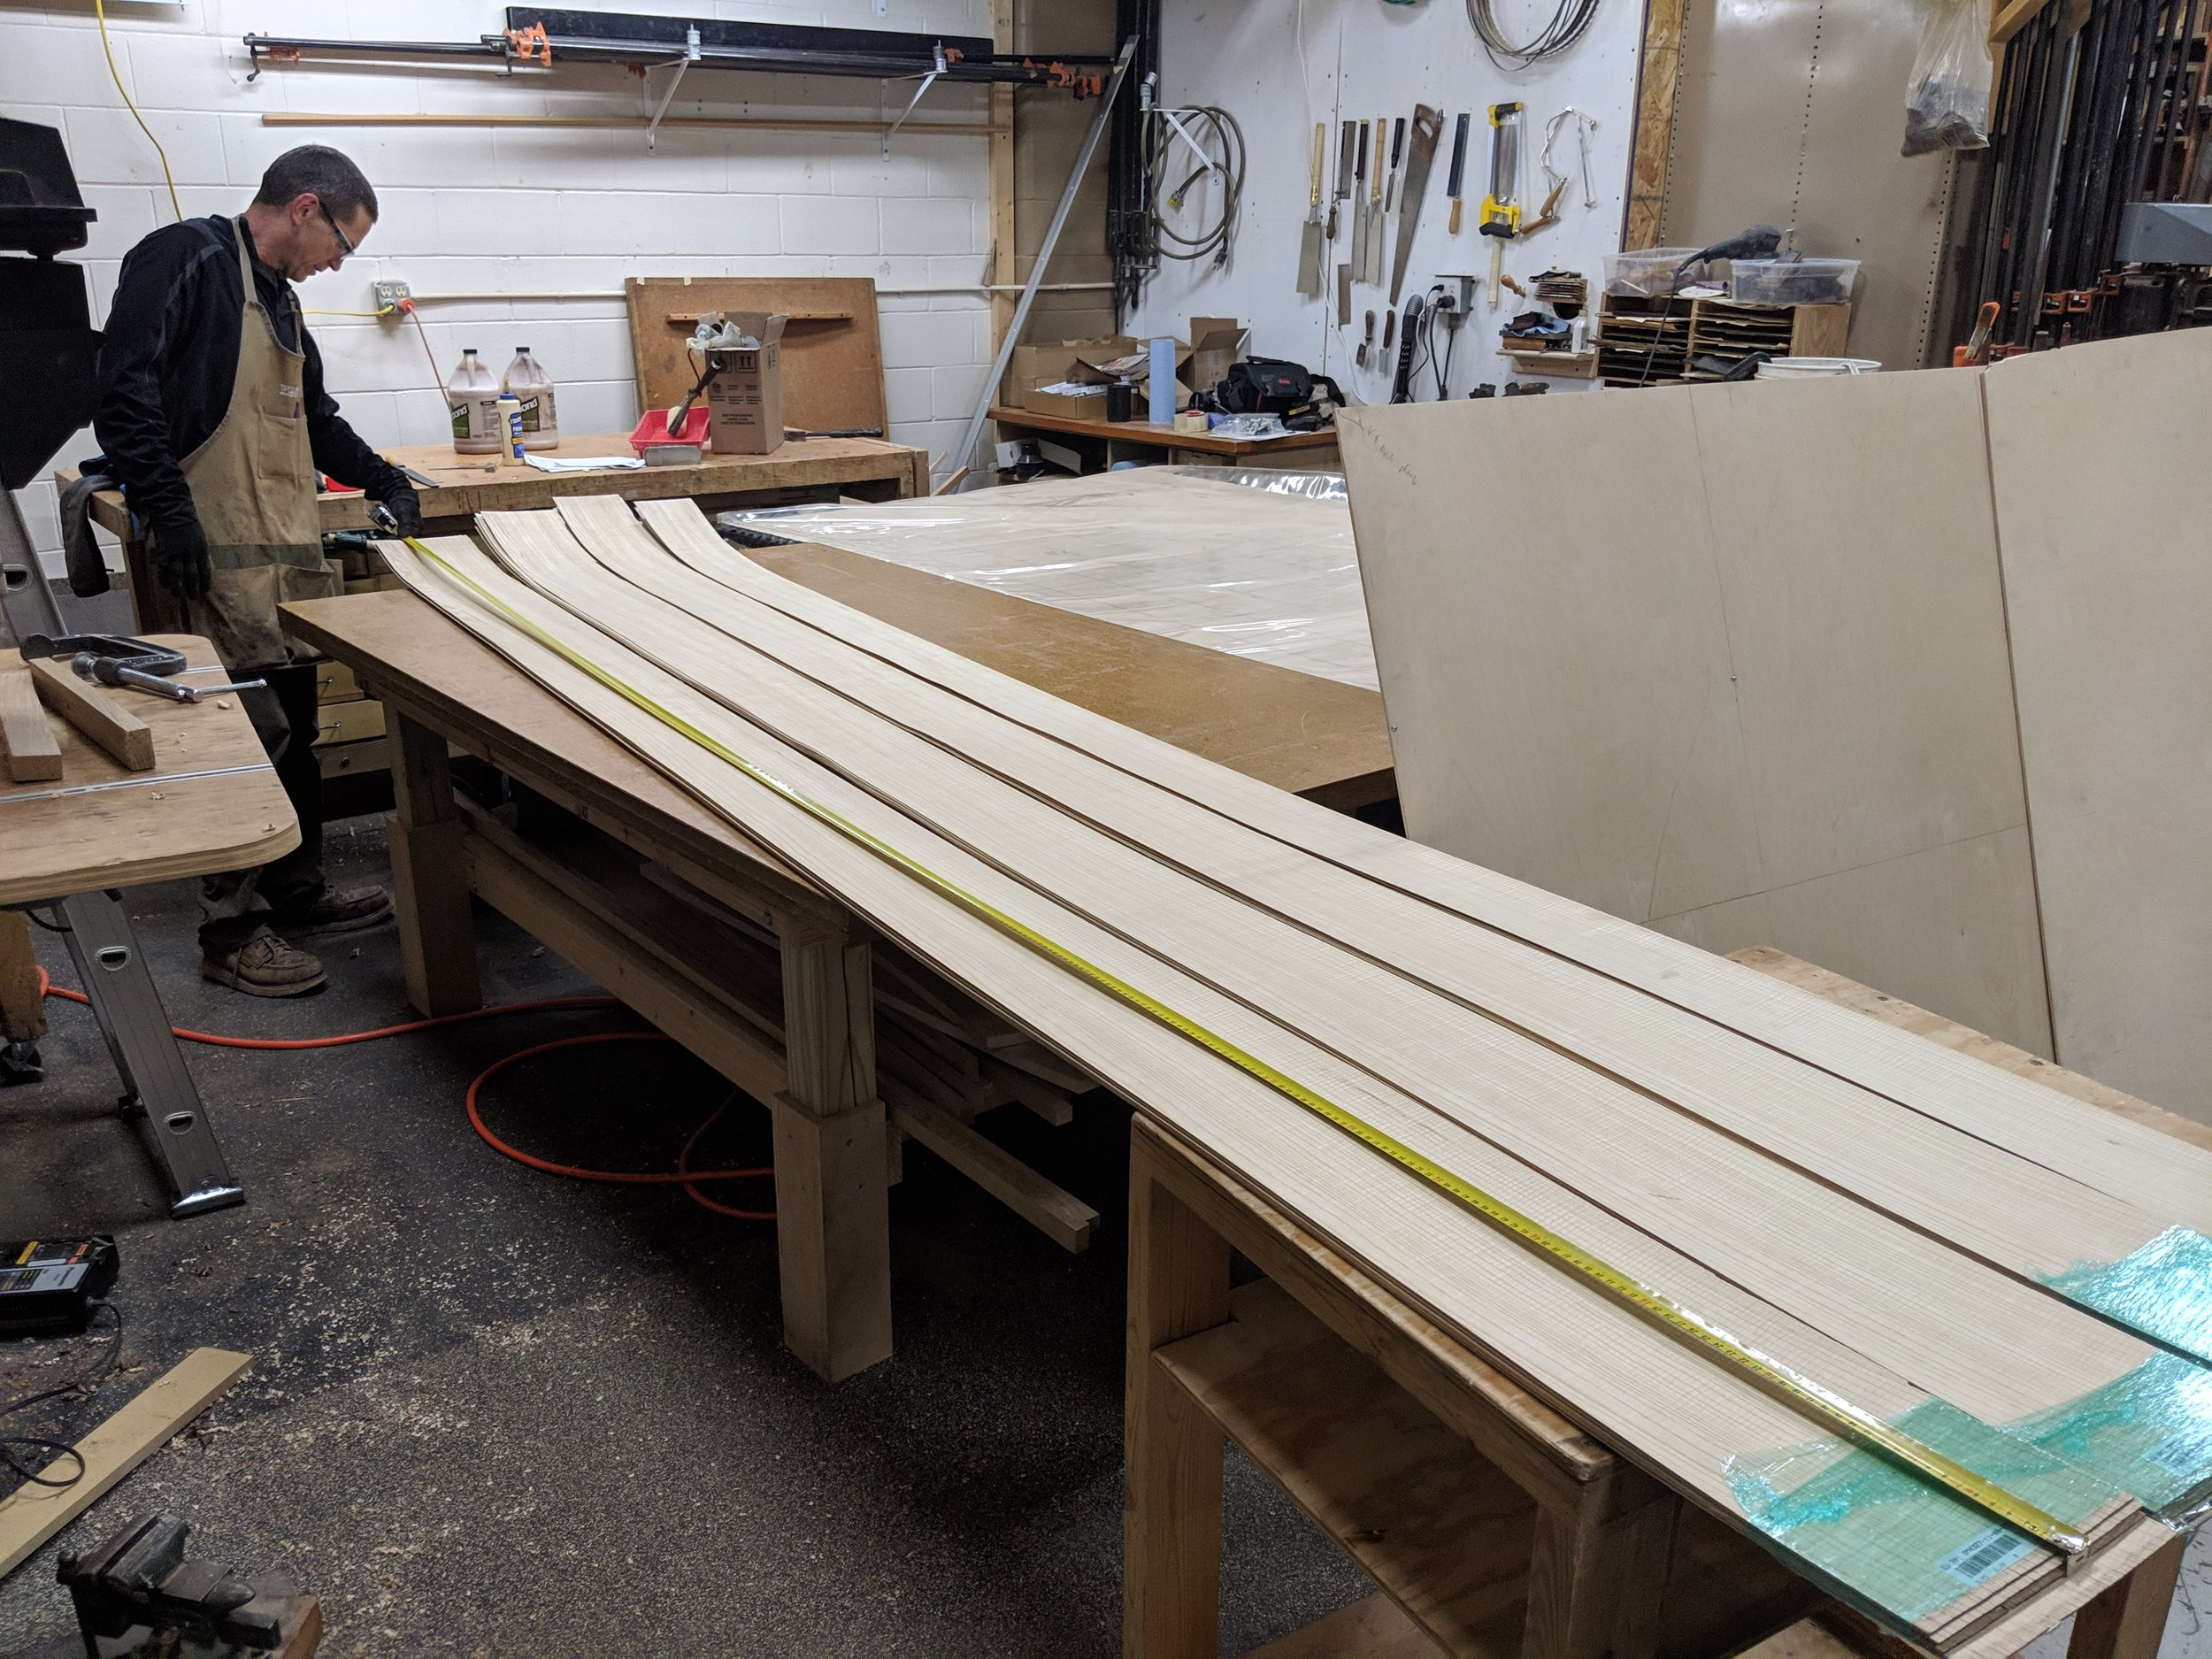 Calculating how to best use the veneer